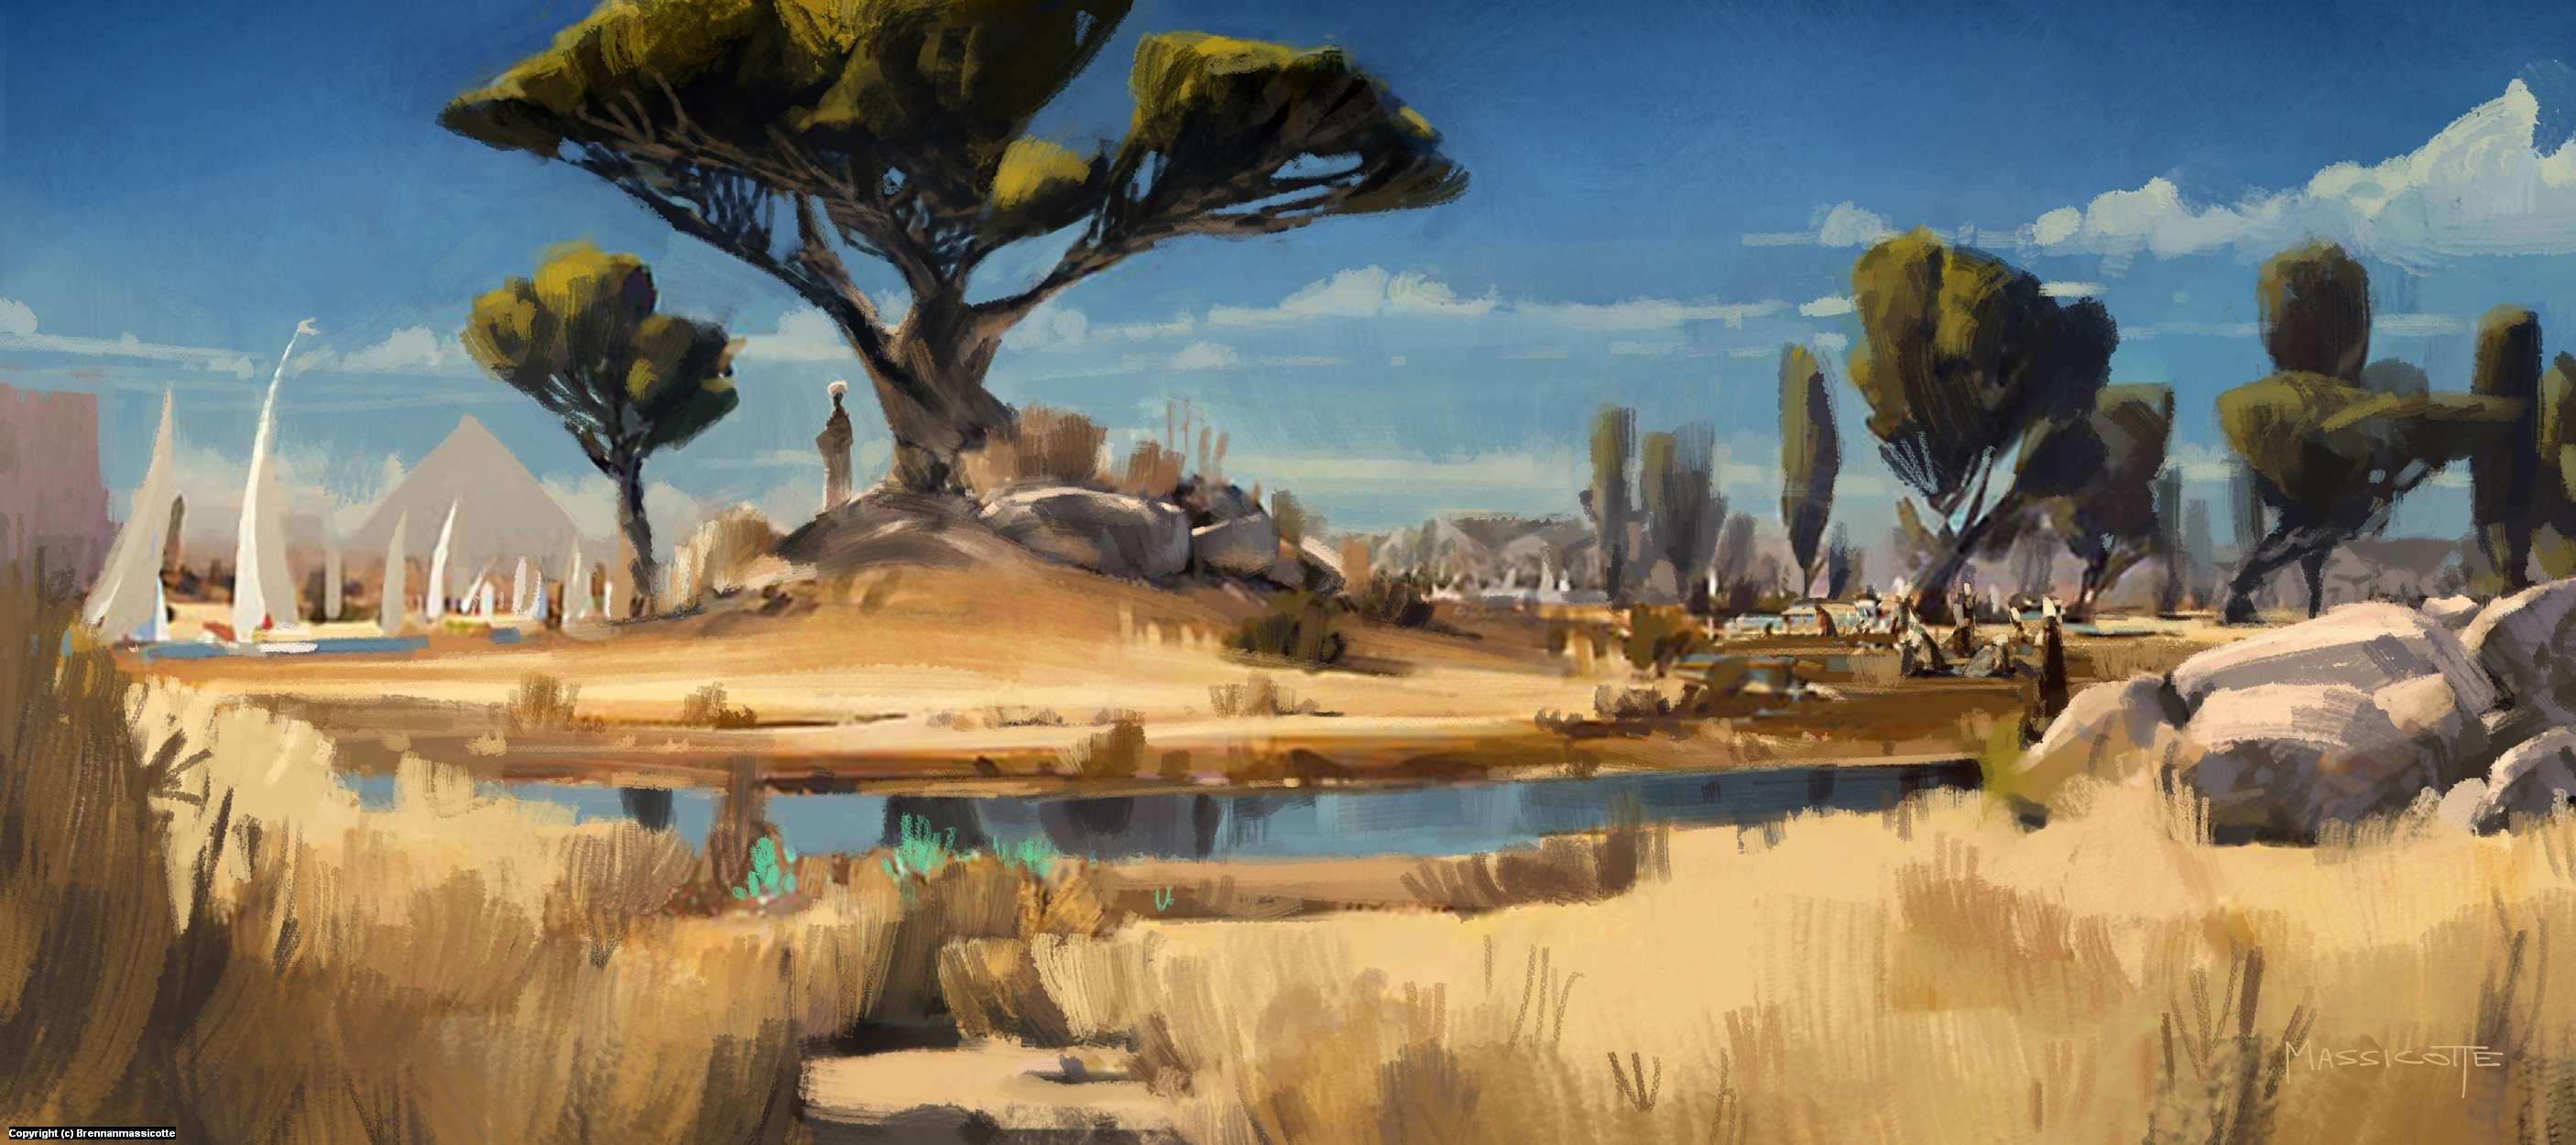 Ancient Nile Artwork by Brennan Massicotte